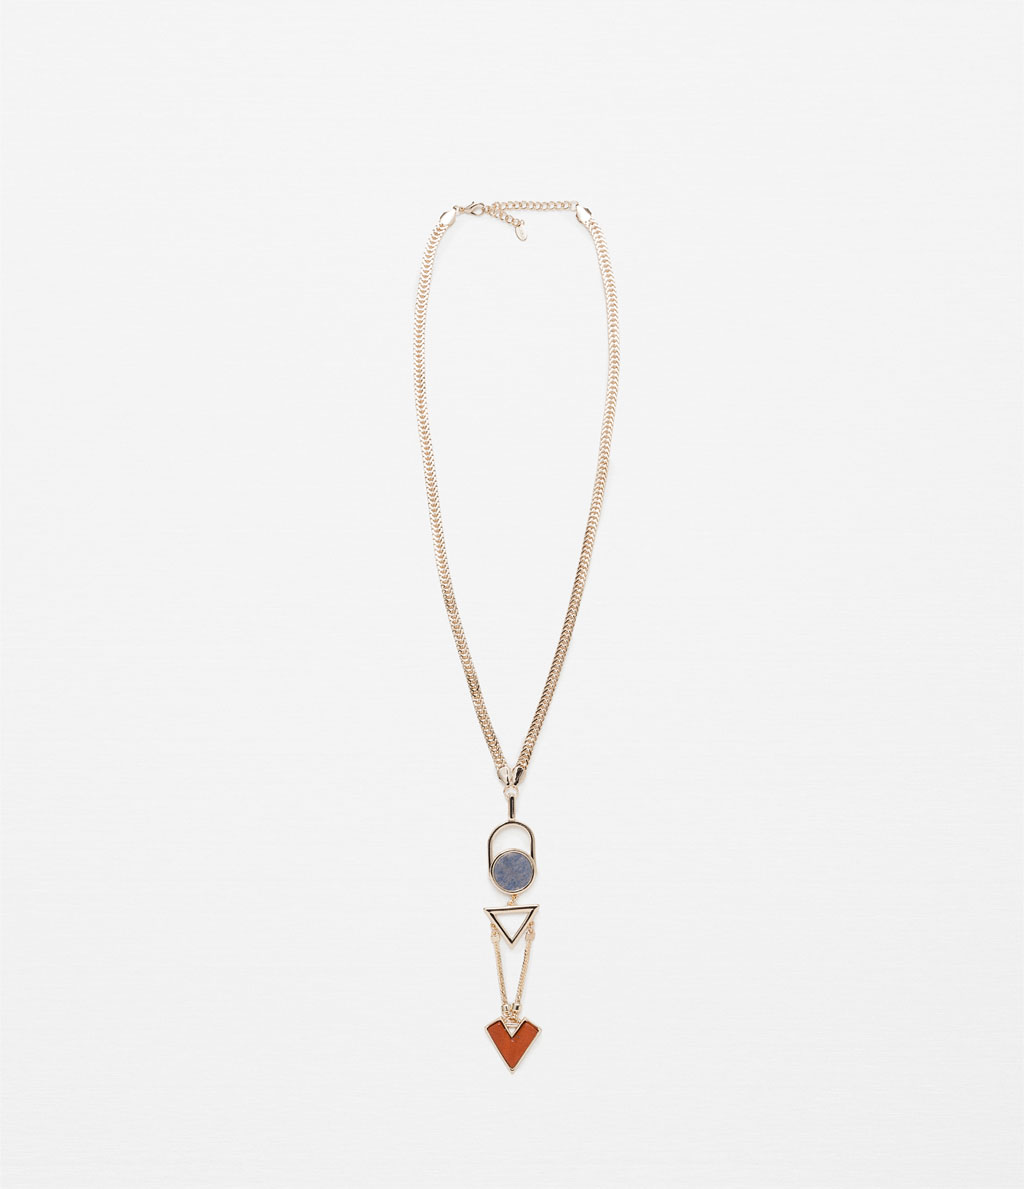 http://www.zara.com/ch/en/woman/accessories/jewellery/colourful-geometrical-necklace-c499007p2853595.html